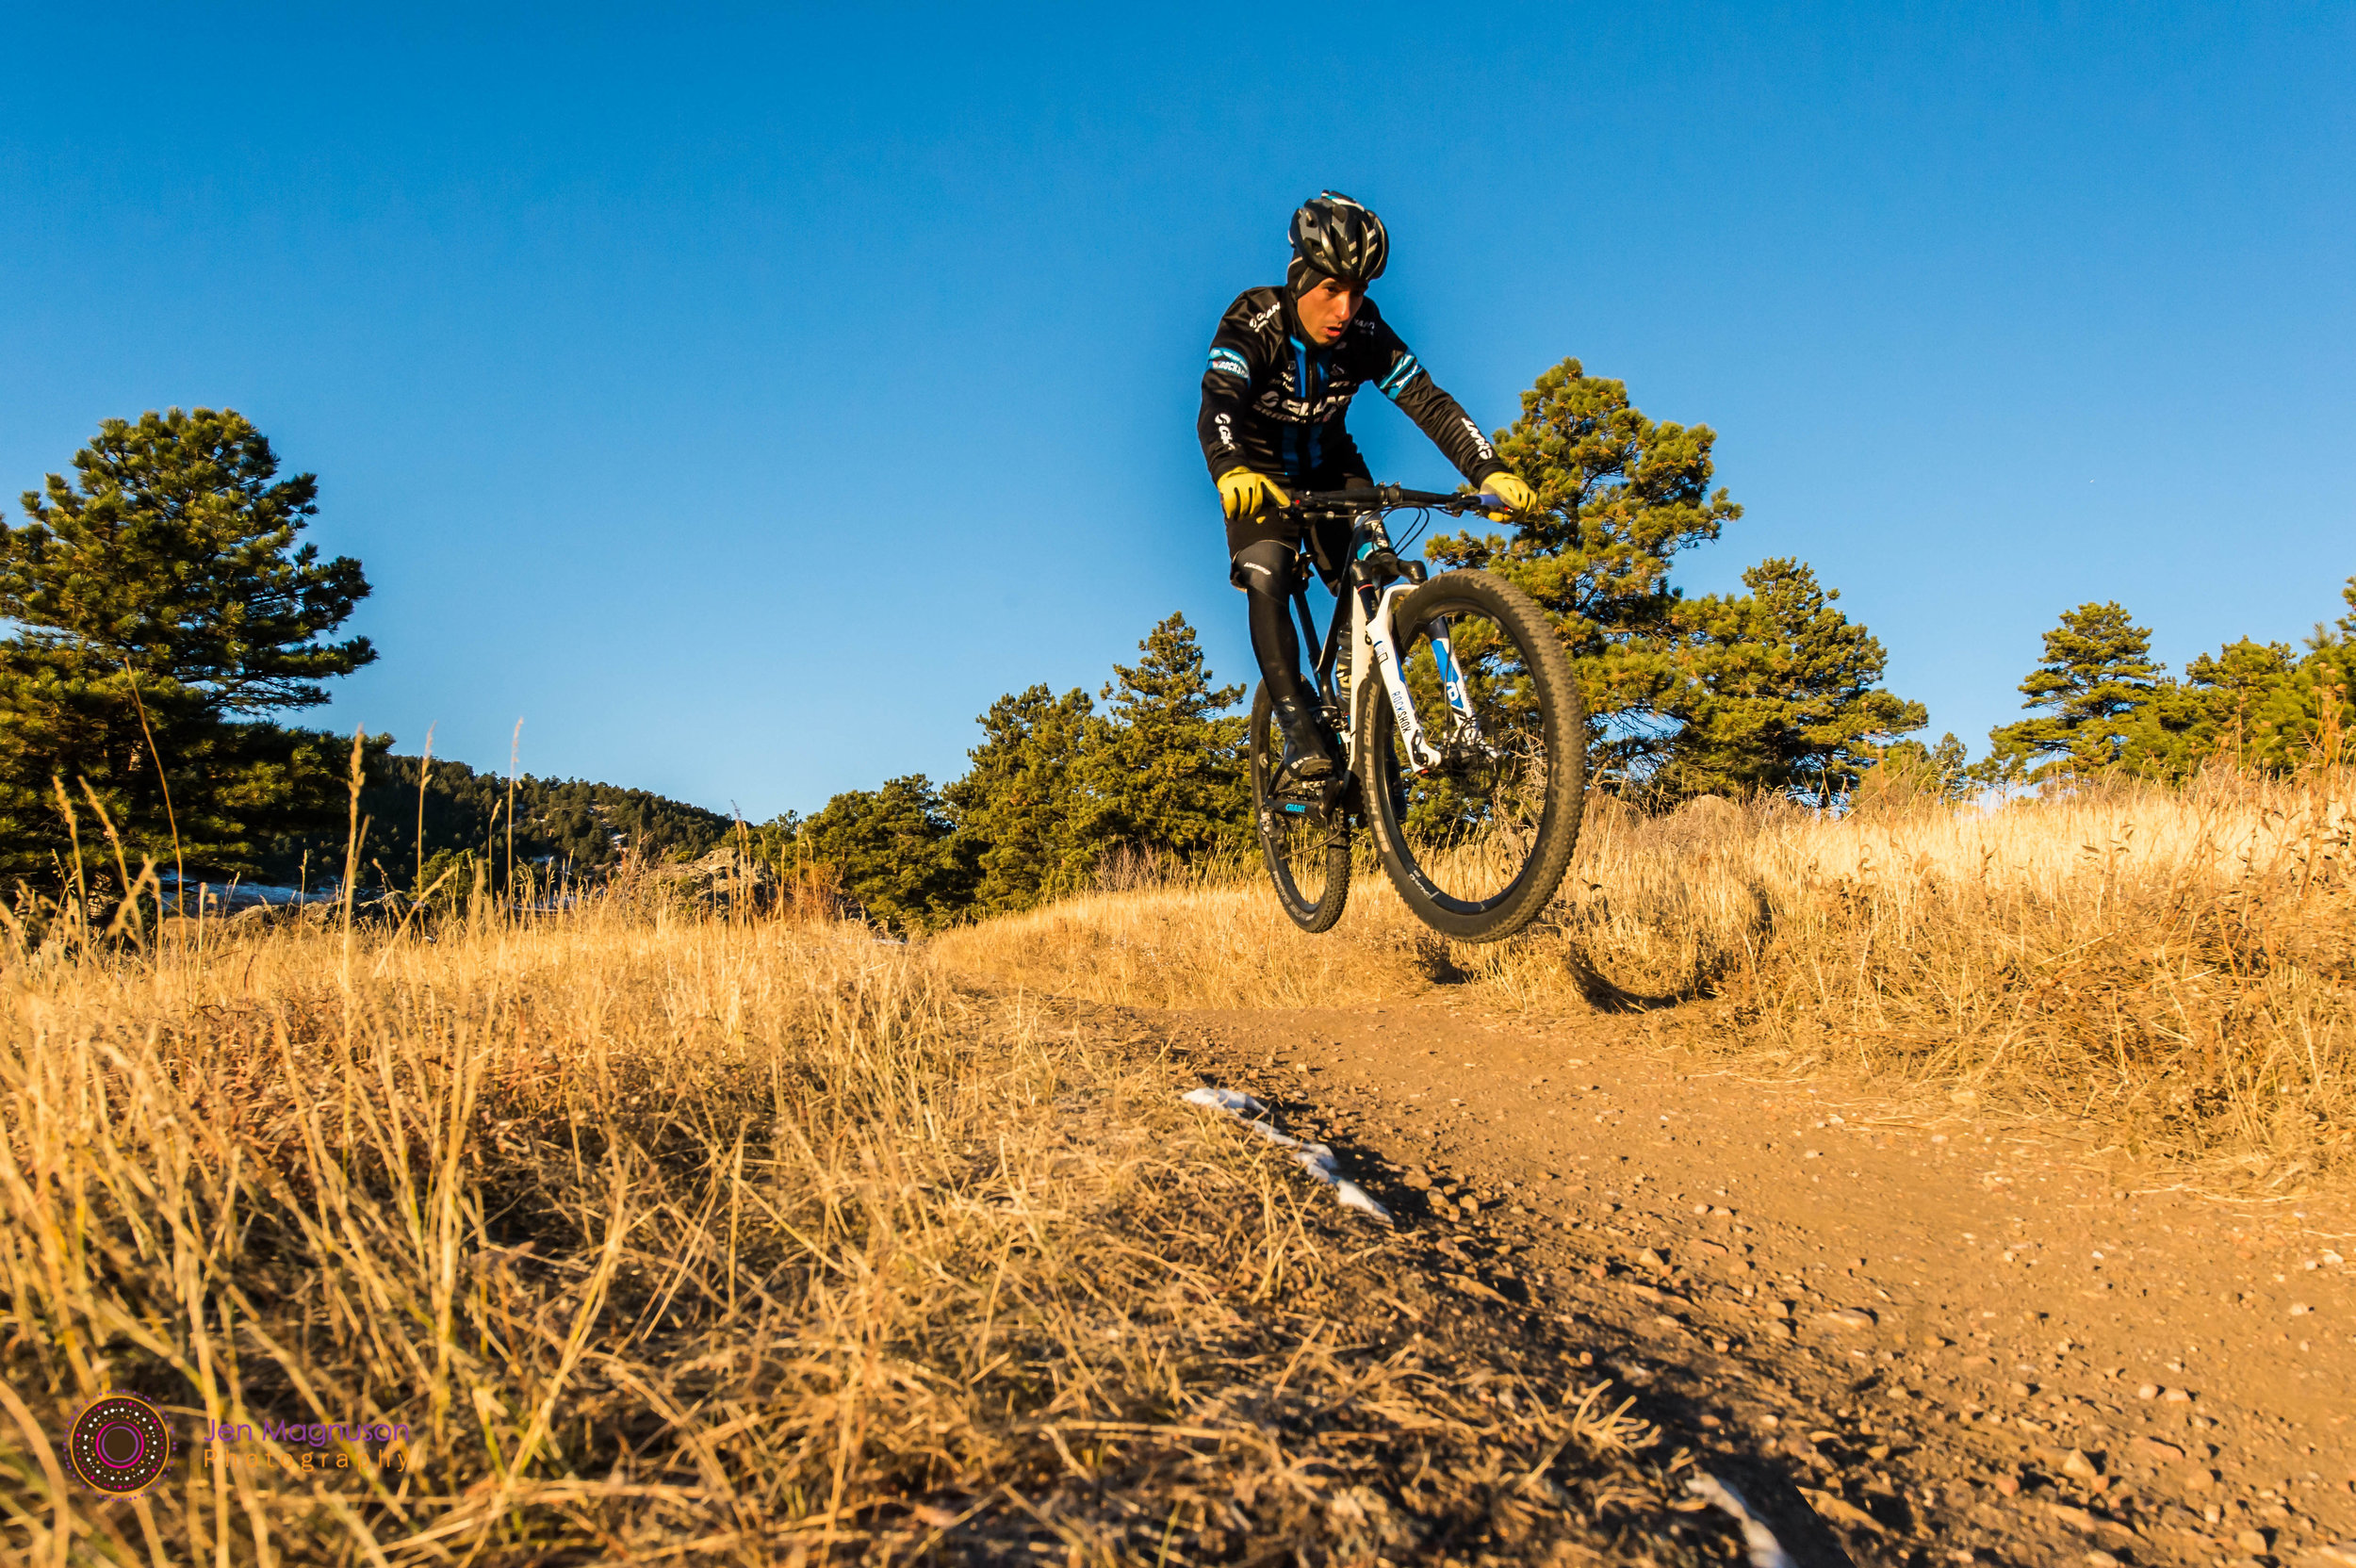 2016-11-24 Mountina Biking with Sina at White Ranch-0445-Edit.jpg